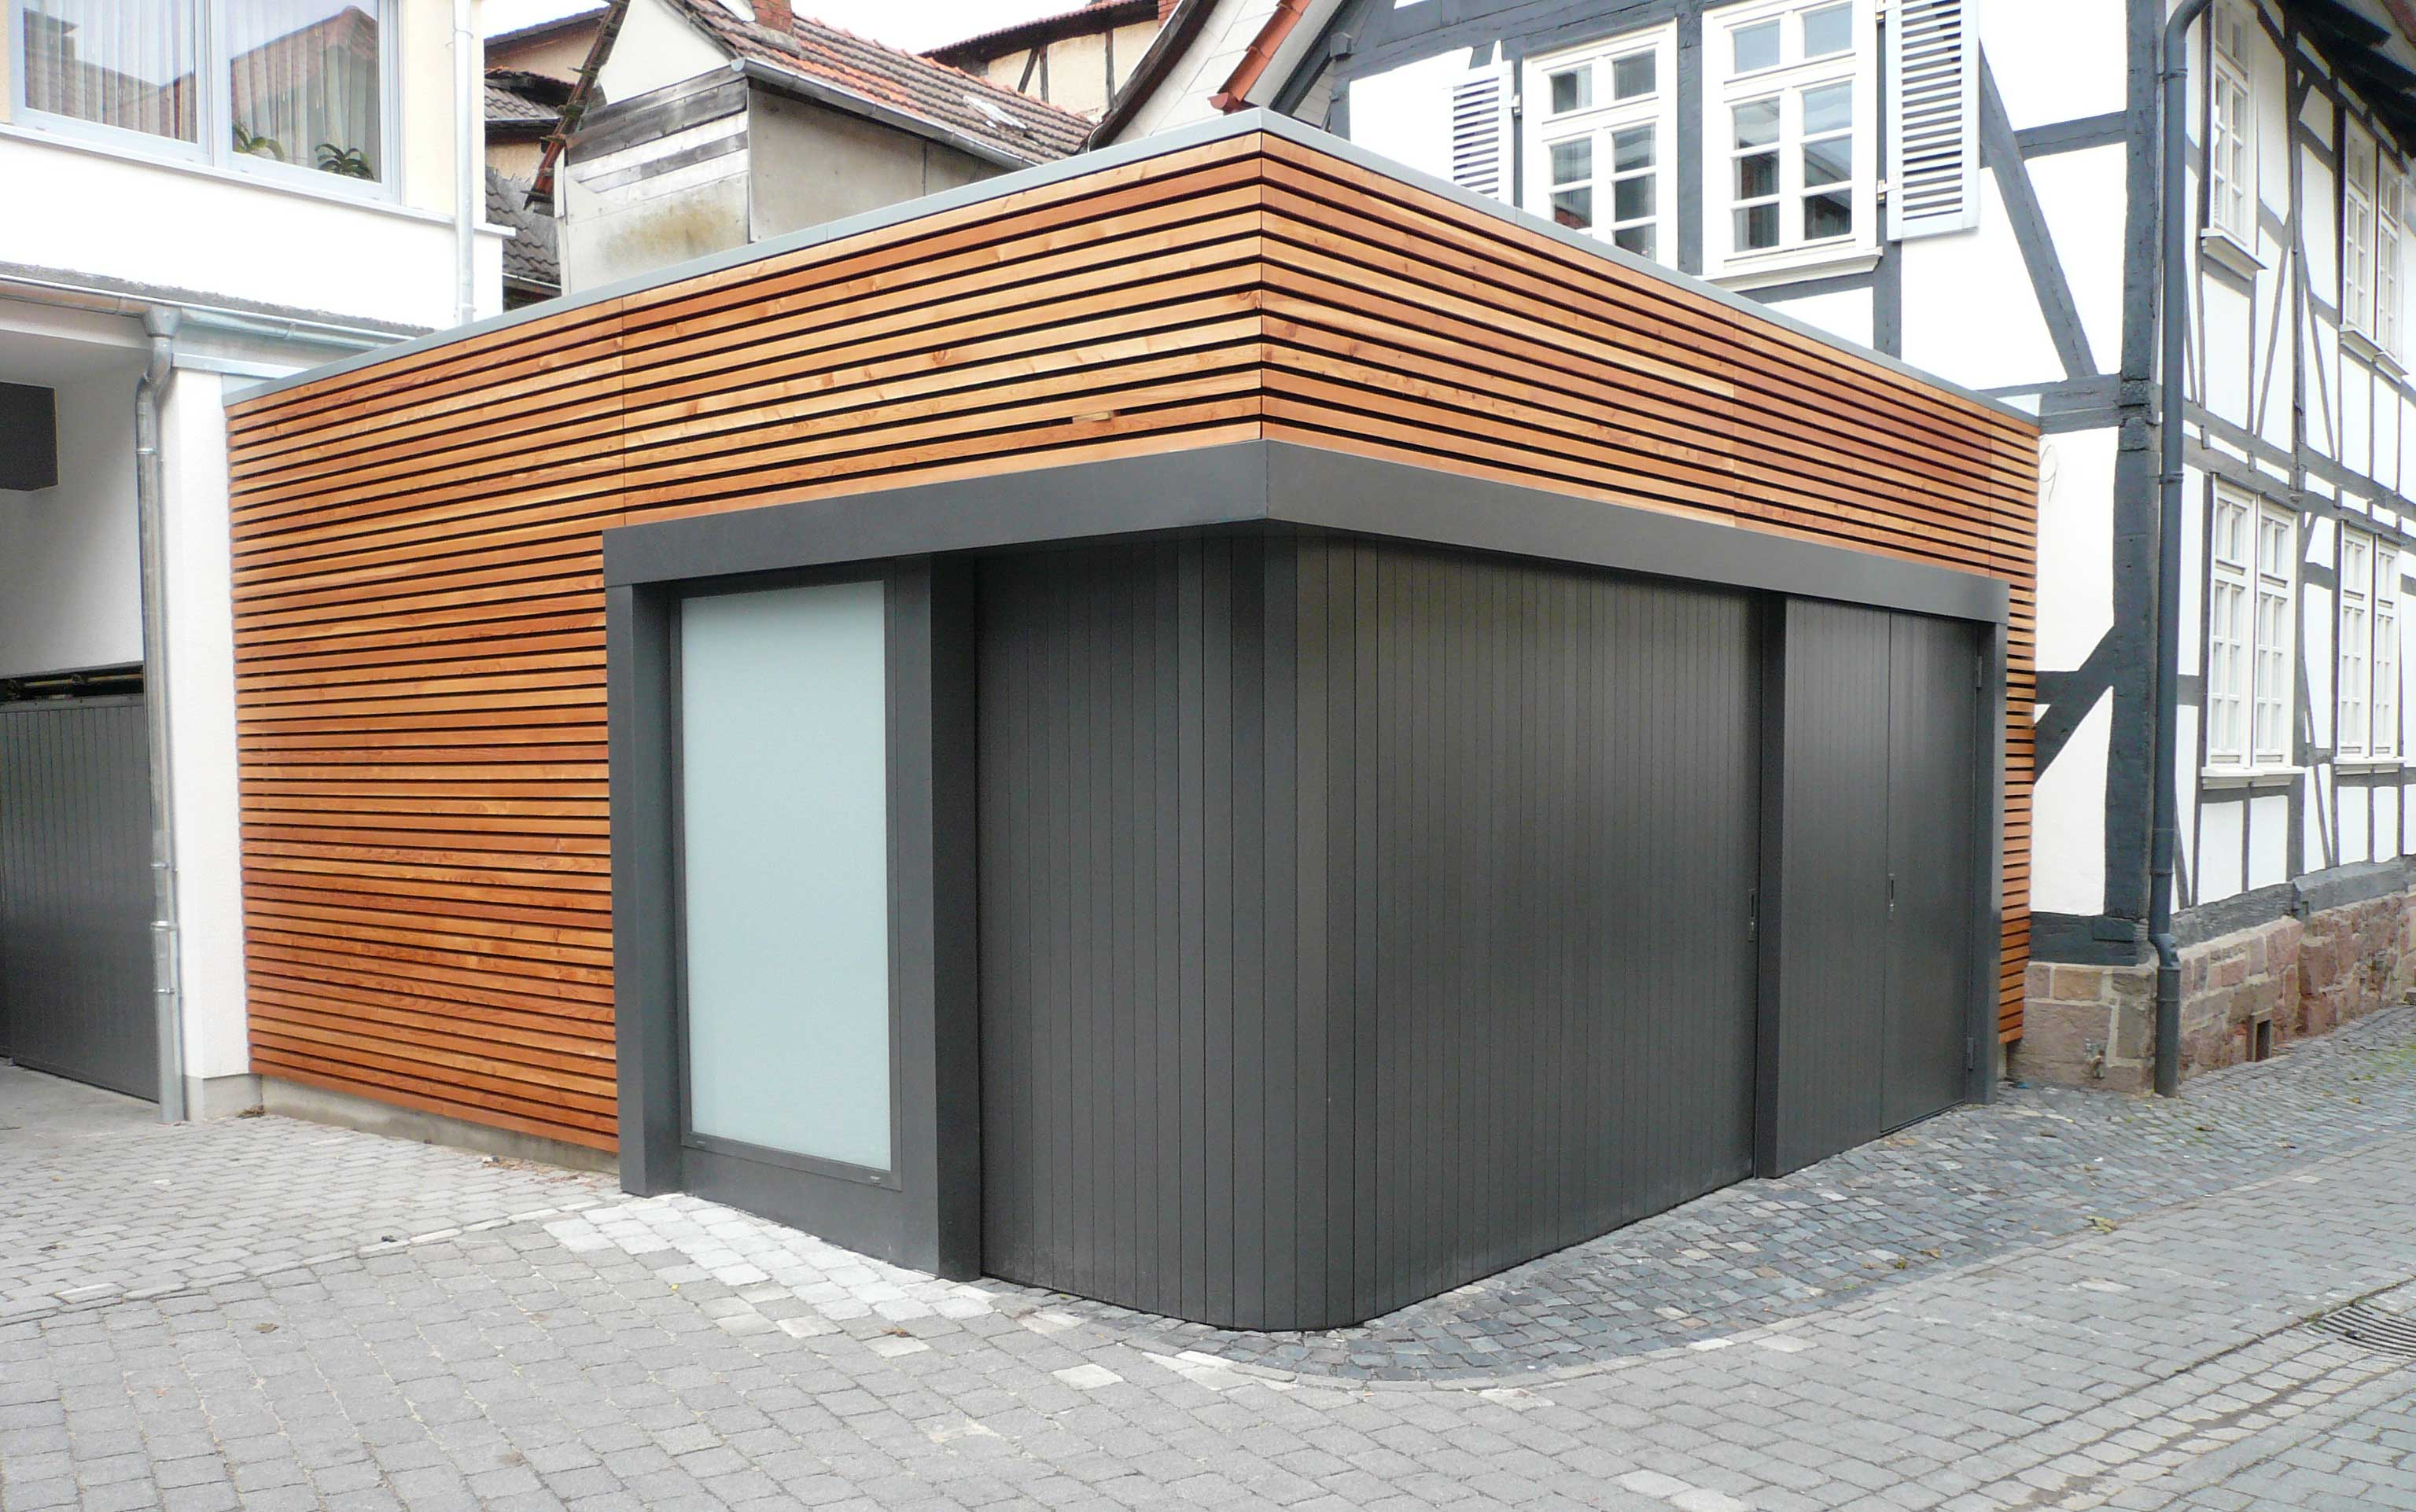 Cornerless Garage Doors - black with wood